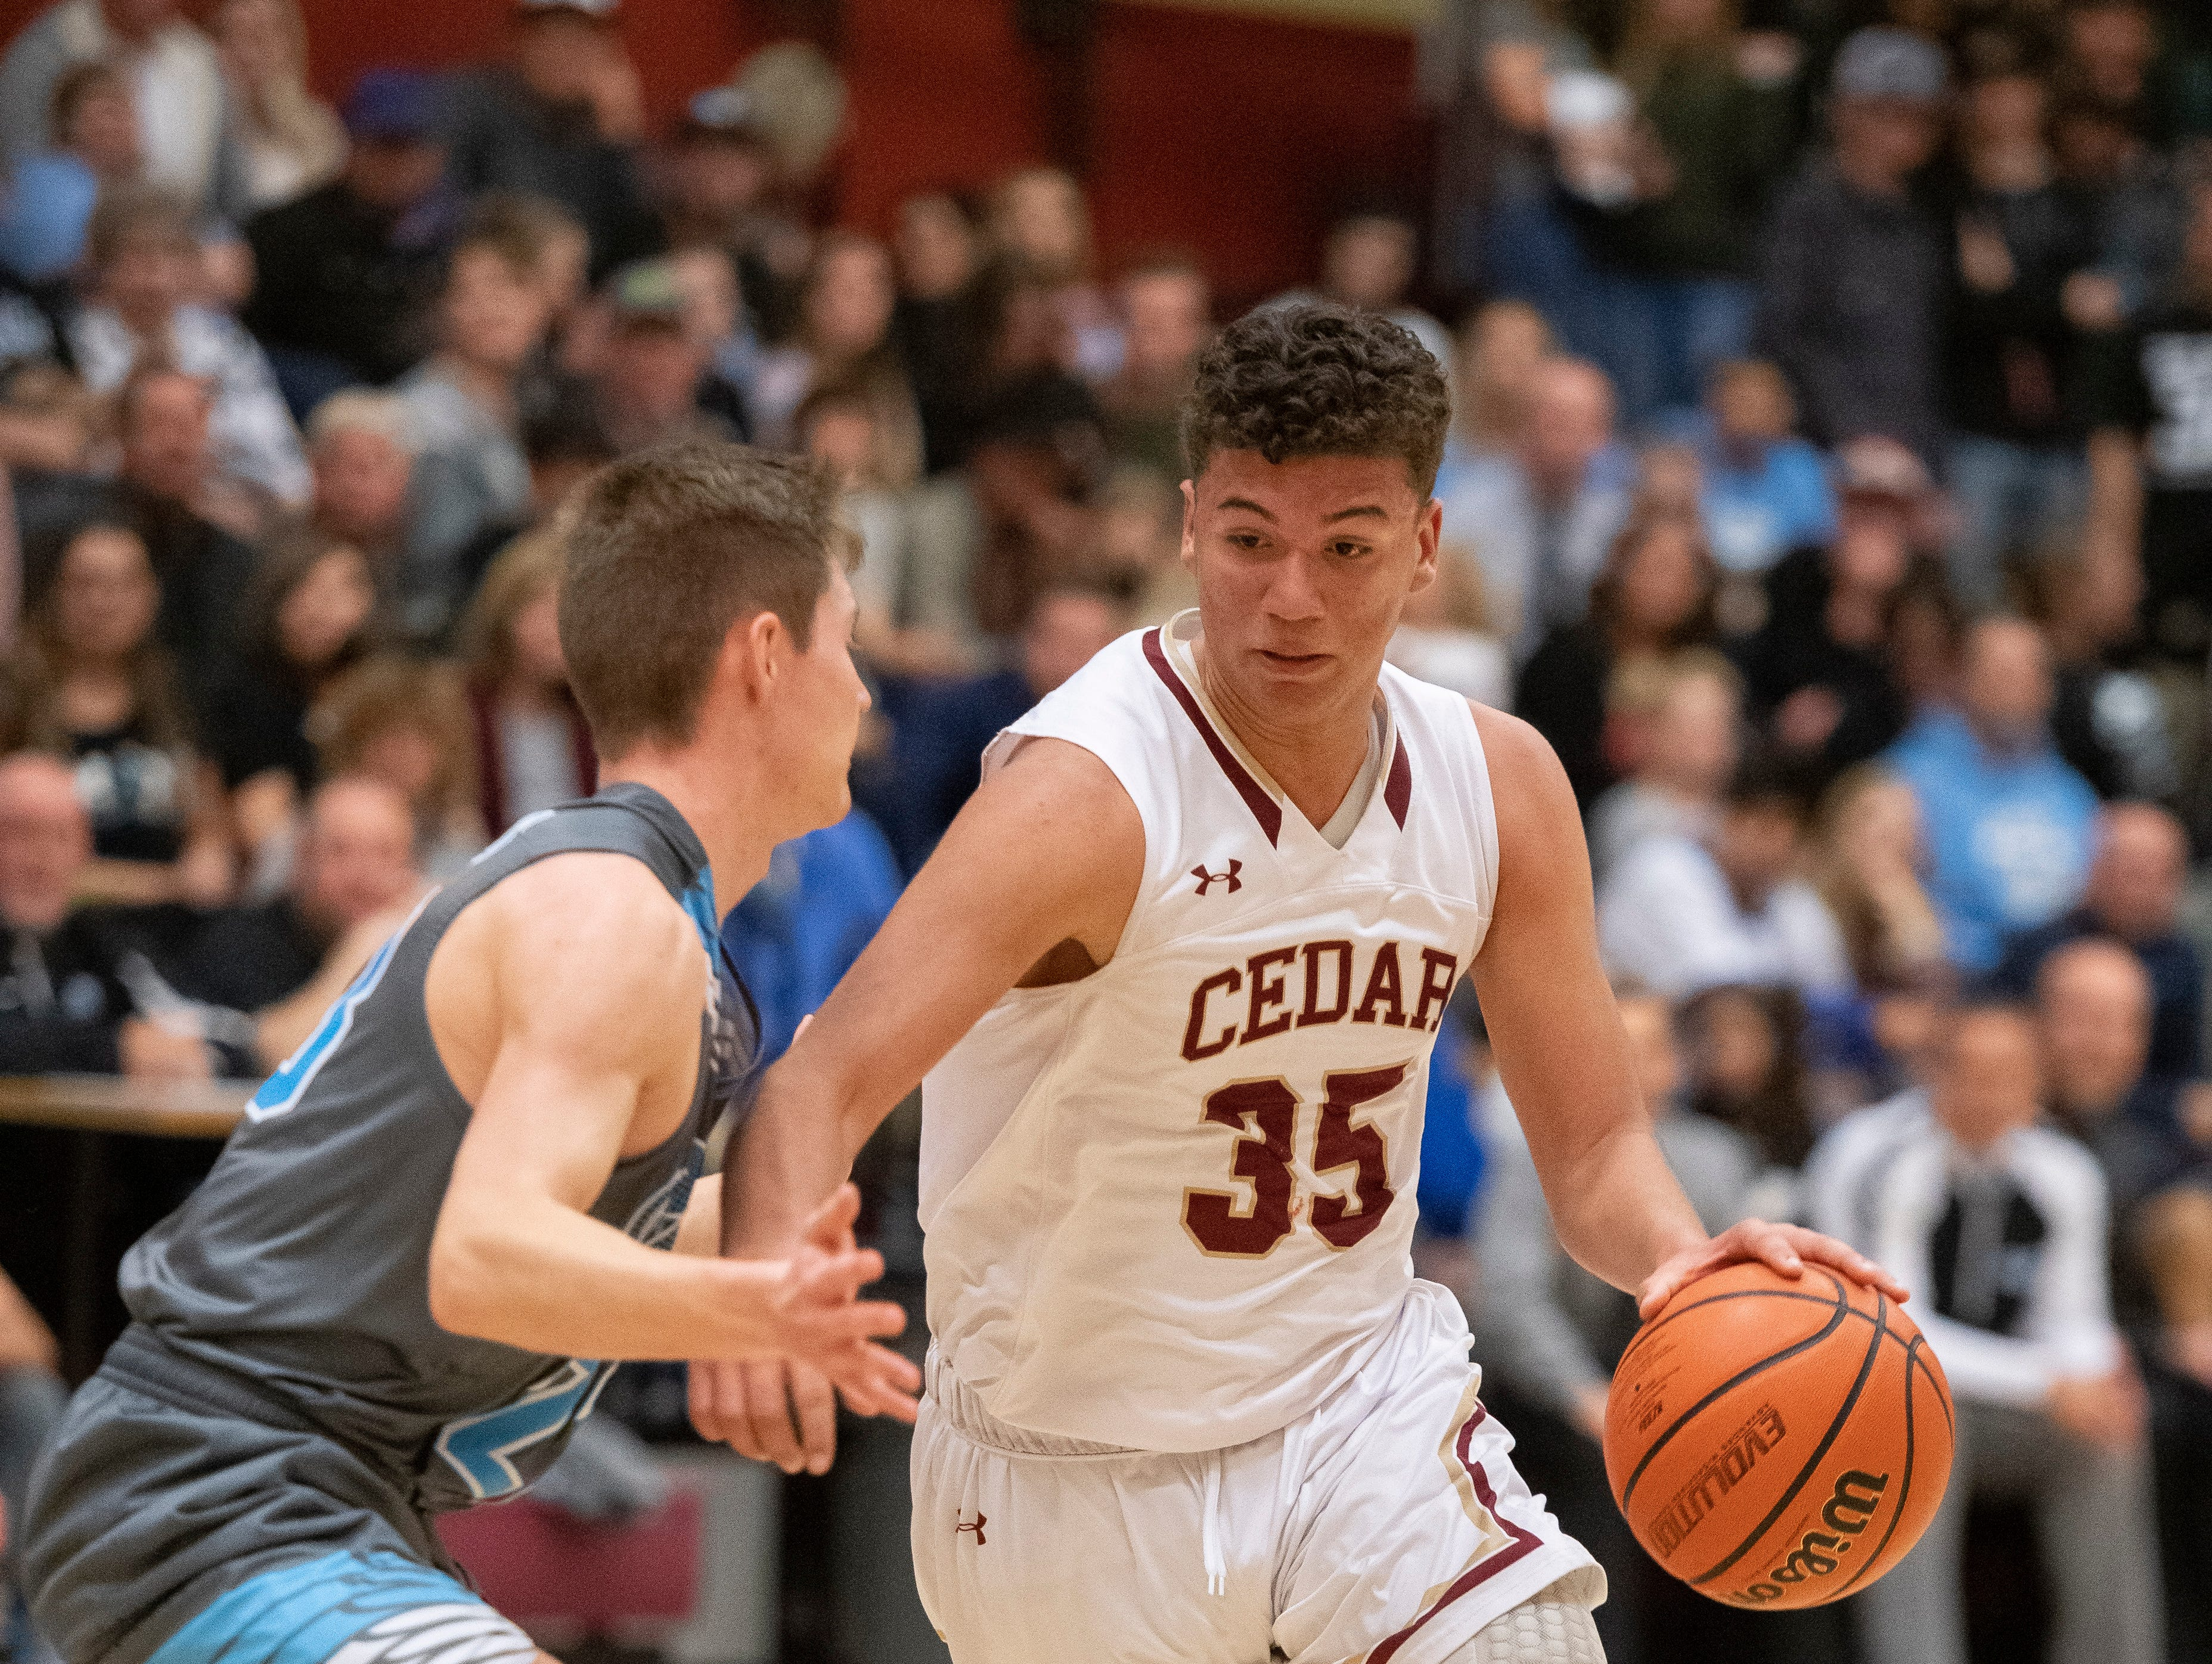 Cedar High School freshman Jorge Reyes (35) works the Canyon View defense at CHS Friday, January 11, 2019. Canyon View won, 61-56.